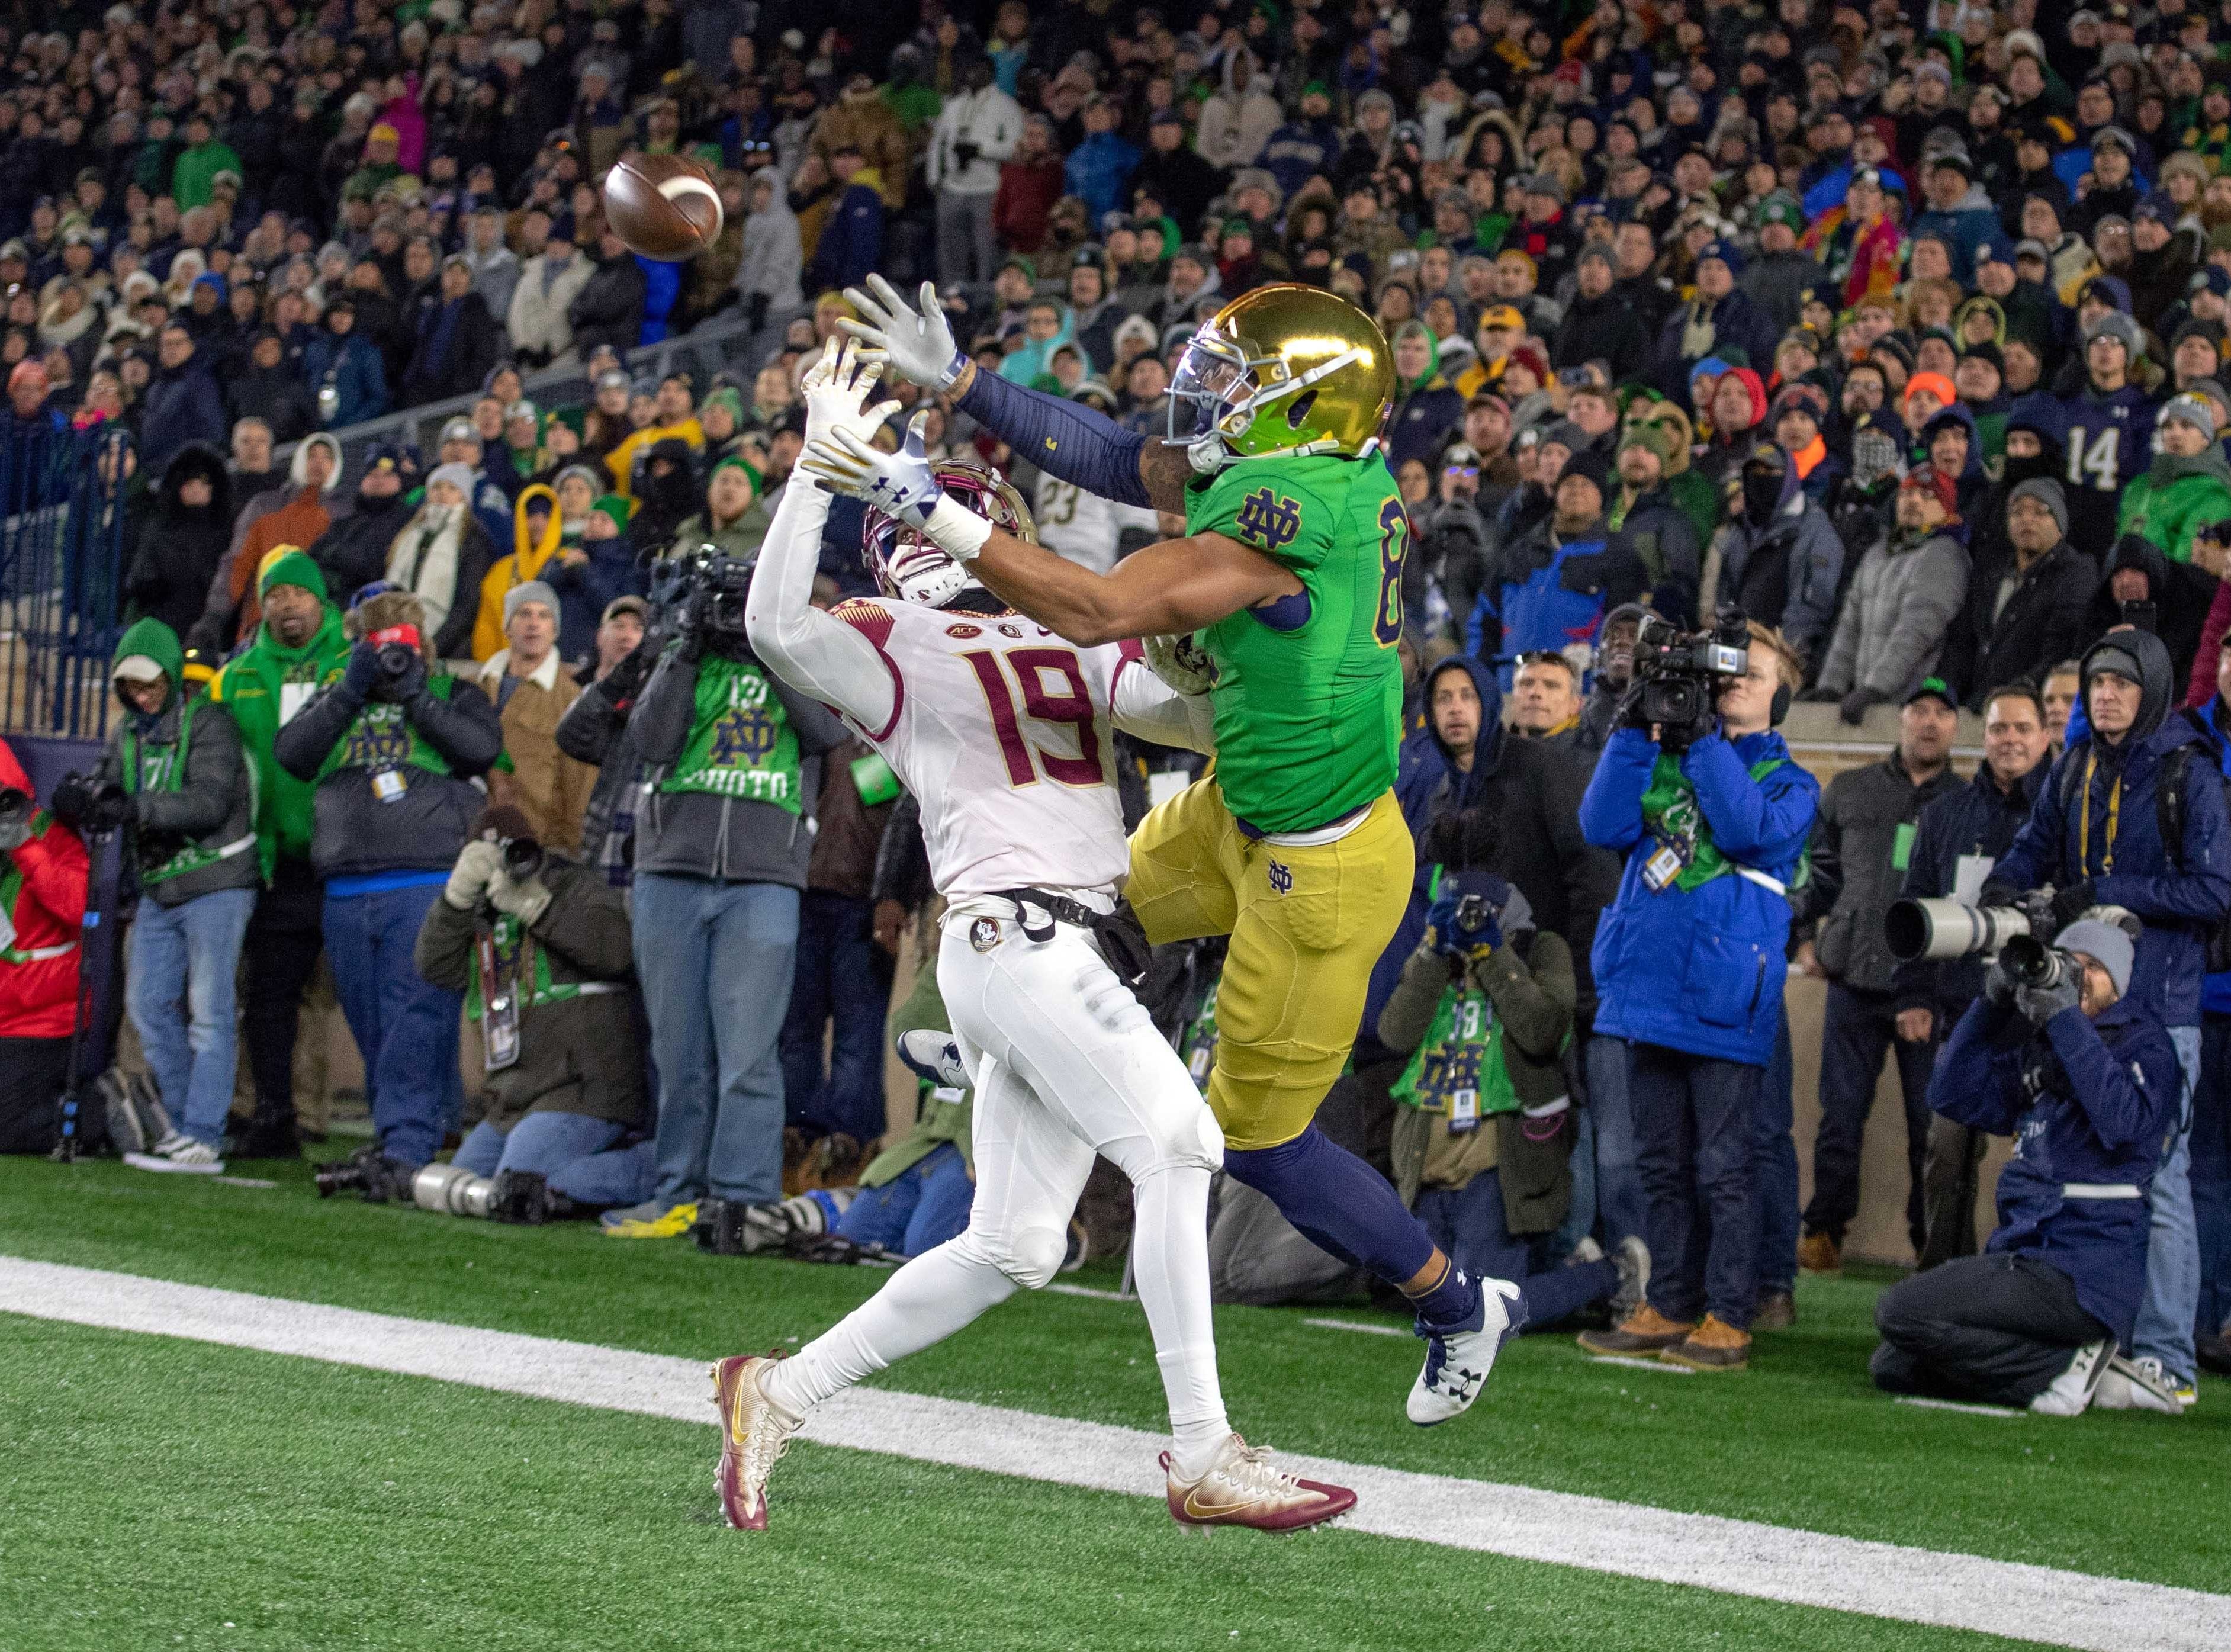 Nov 10, 2018; South Bend, IN, USA; Notre Dame Fighting Irish tight end Alize Mack (86) catches a pass for a touchdown as Florida State Seminoles defensive back A.J. Westbrook (19) defends in the first quarter at Notre Dame Stadium. Mandatory Credit: Matt Cashore-USA TODAY Sports